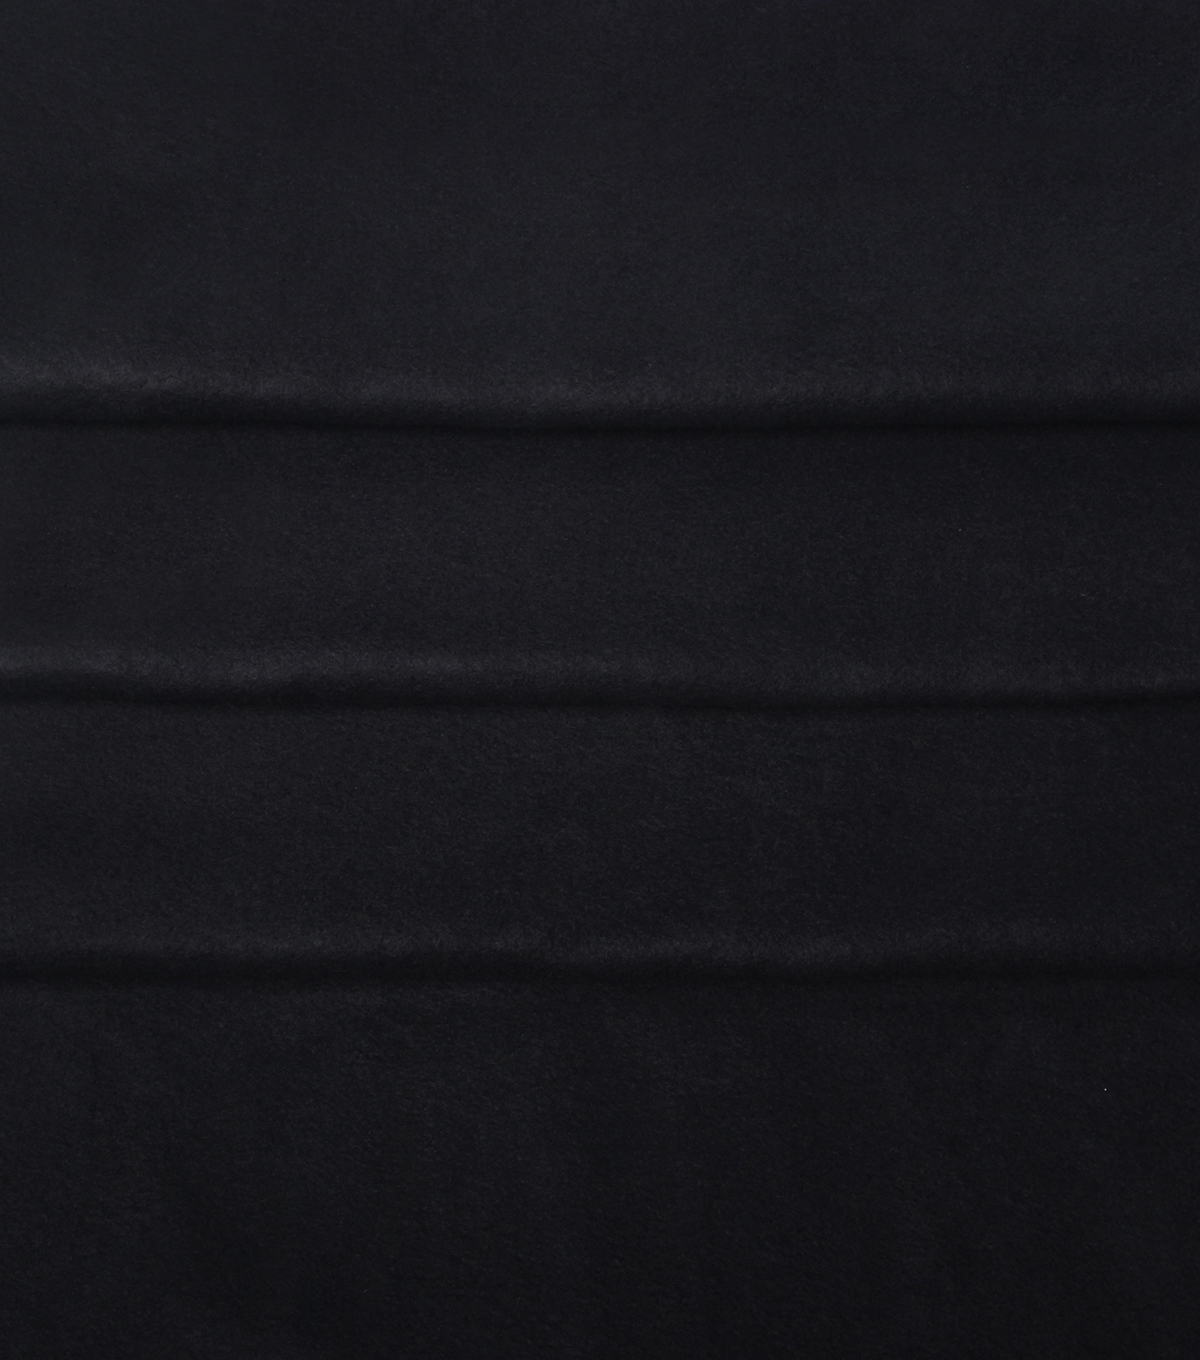 The BIG Bolt Blizzard Fleece Fabric x30 yds-Black